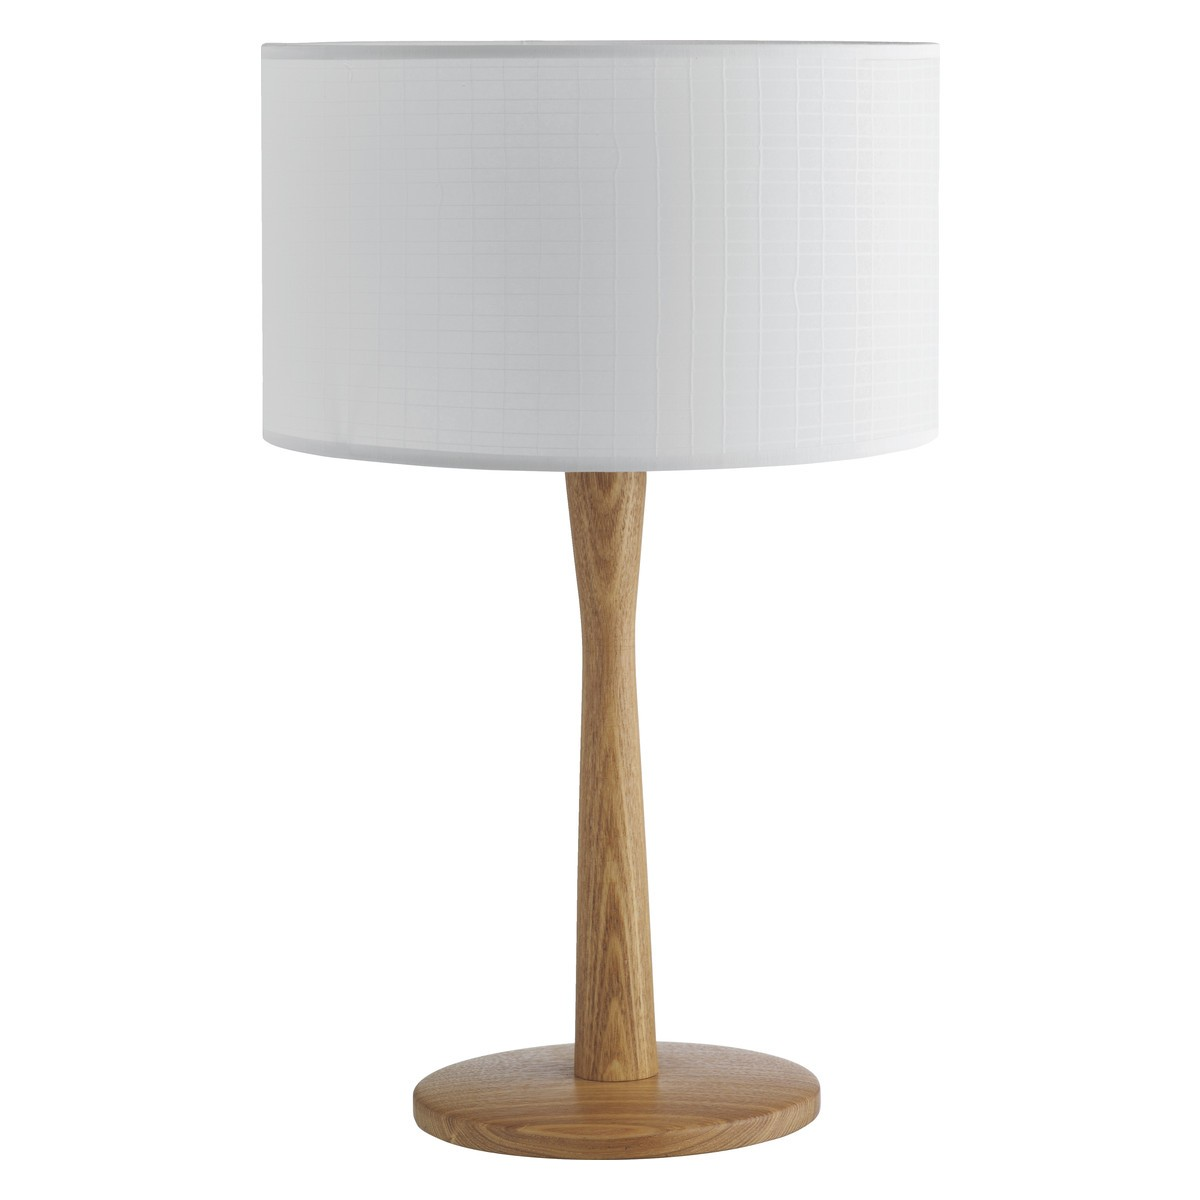 Restoration hardware table lamps photo 1 sienna table for Restore wooden floor lamp